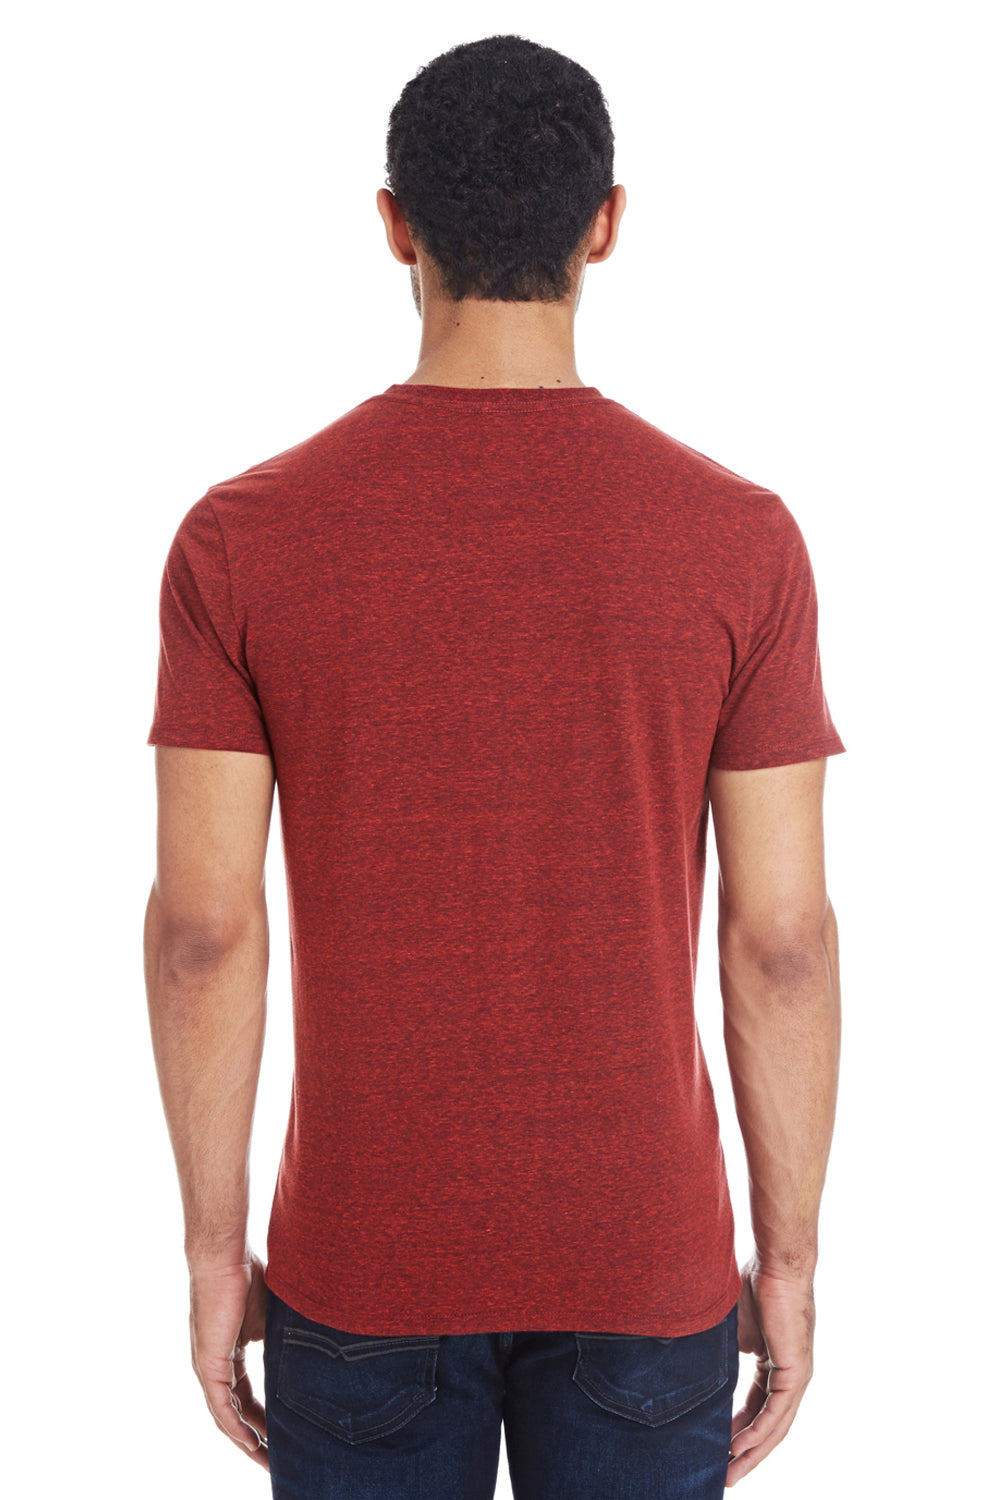 Threadfast Apparel 102A Mens Short Sleeve Crewneck T-Shirt Cardinal Red Back